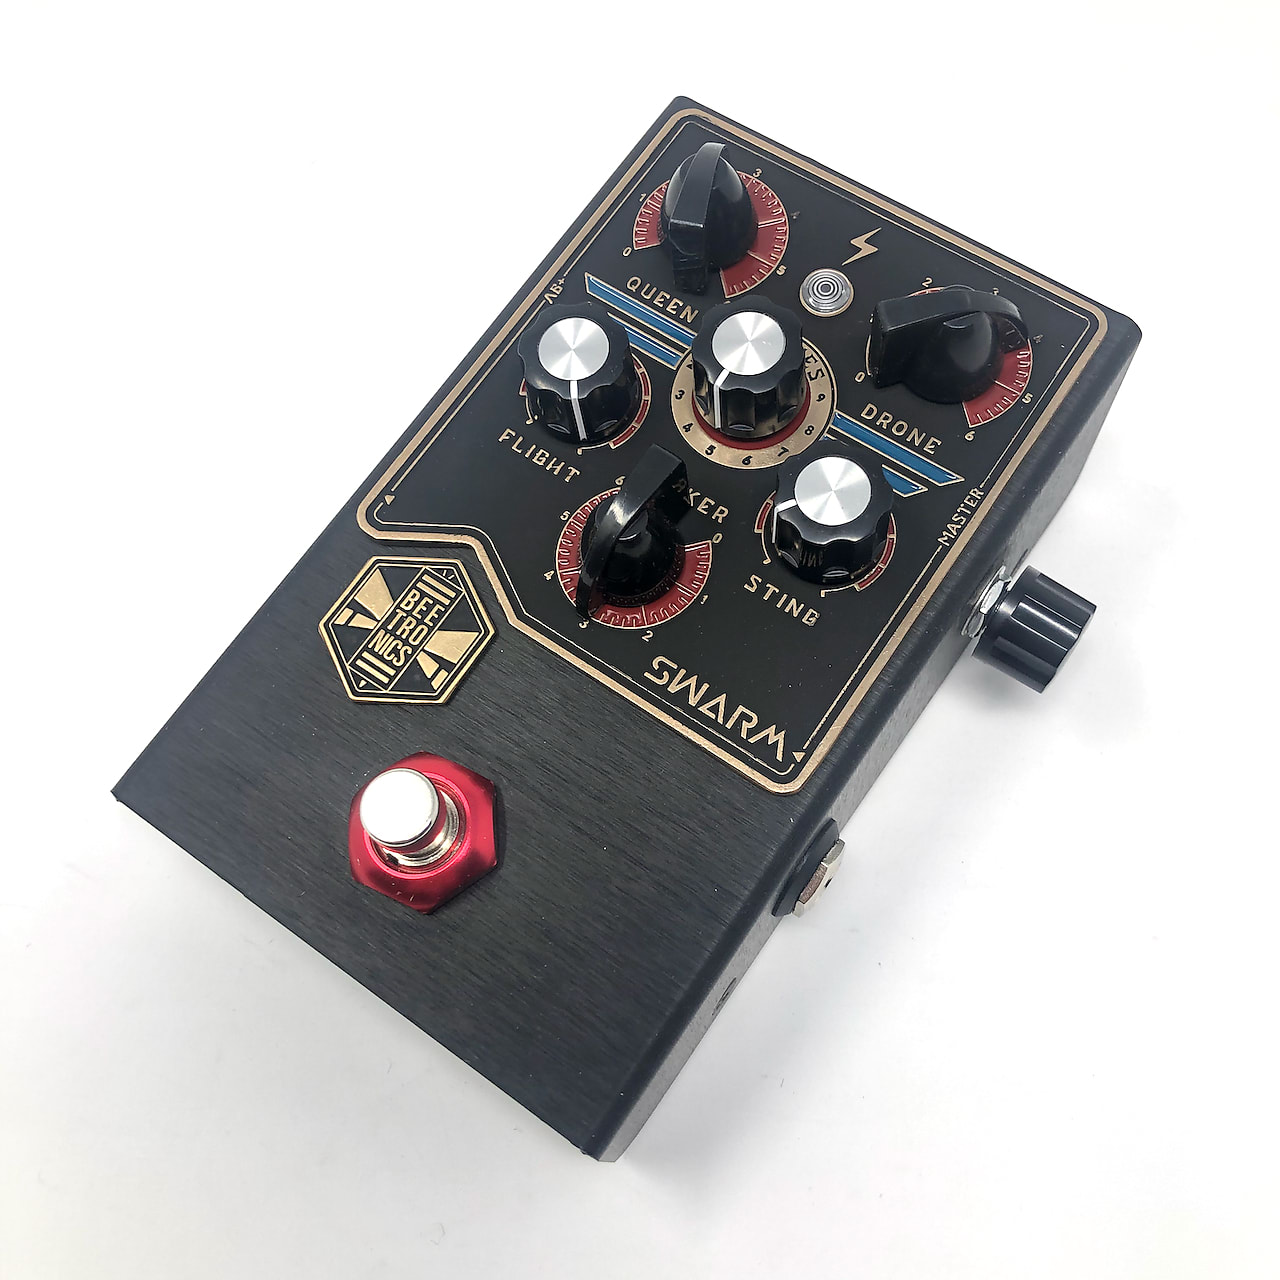 Beetronics Swarm - Royal Series - Analog Fuzz Harmonizer